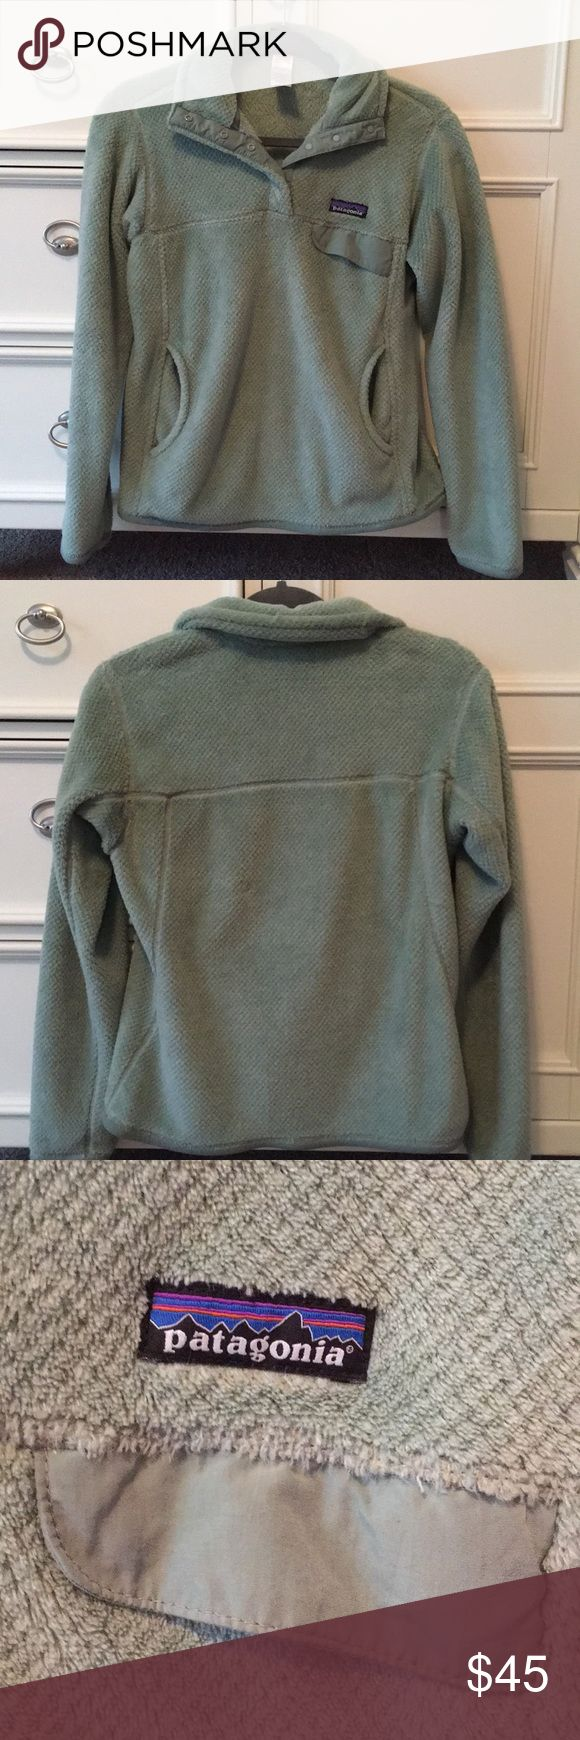 Patagonia Pullover Good condition! Color is a light seafoam green! Only selling because I grew out of it. Patagonia Jackets & Coats